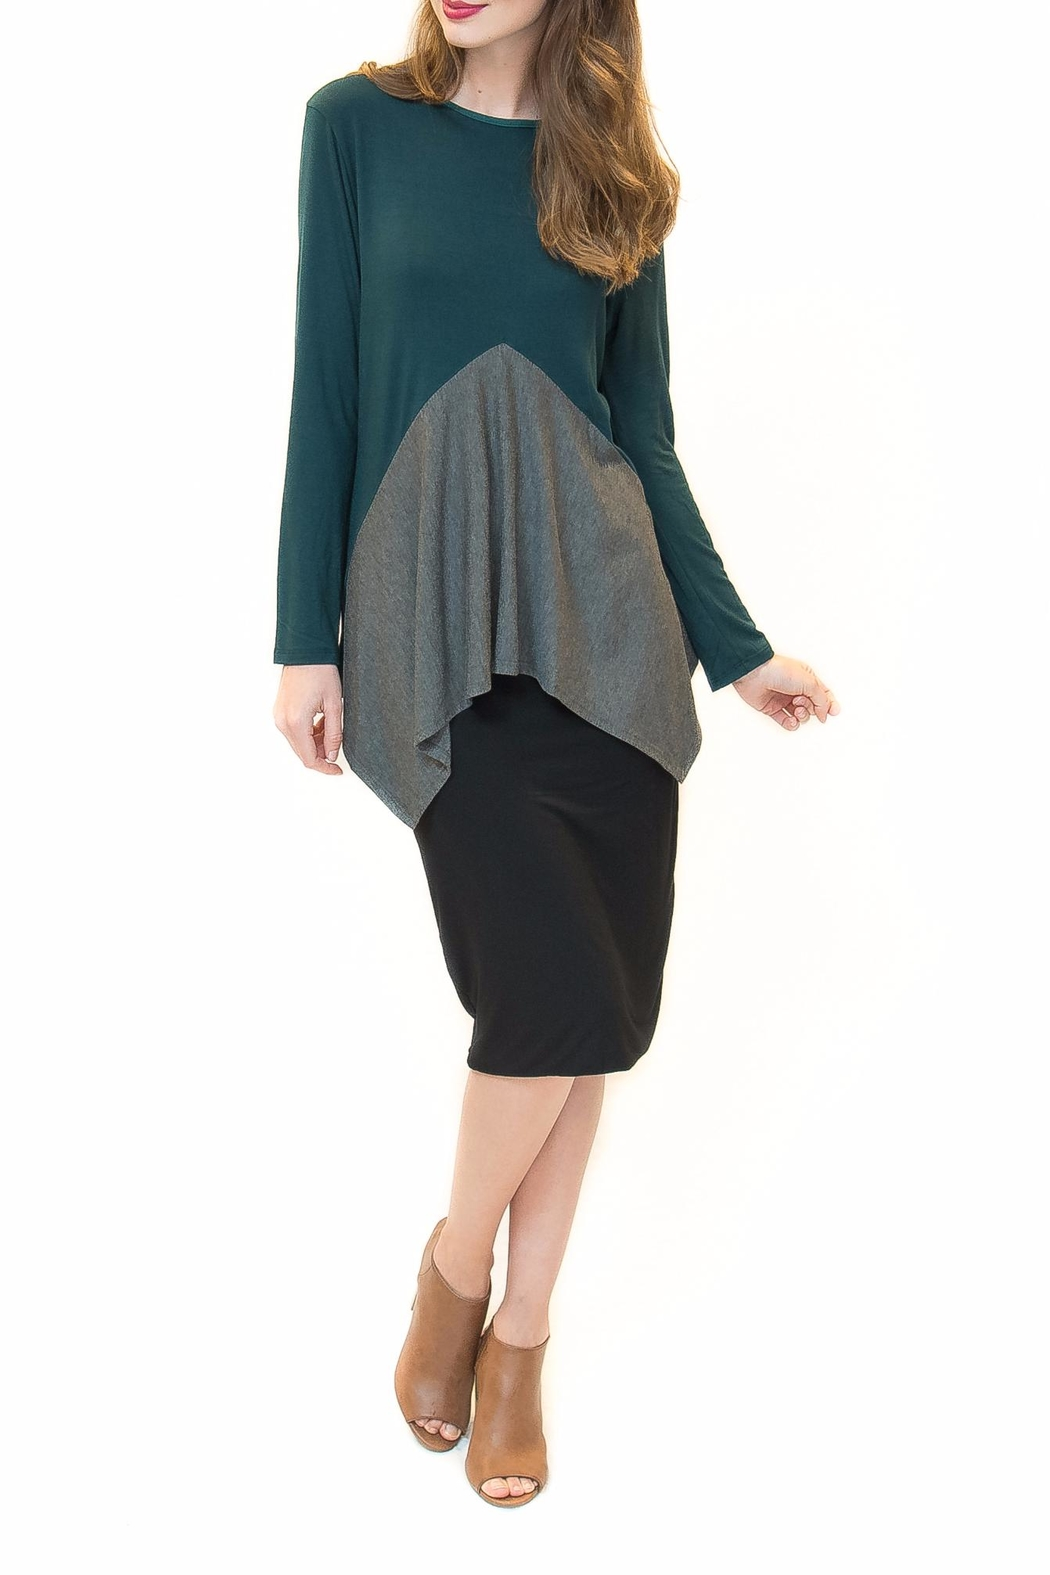 Maya's Place Asymmetrical Combo Color Top - Front Cropped Image